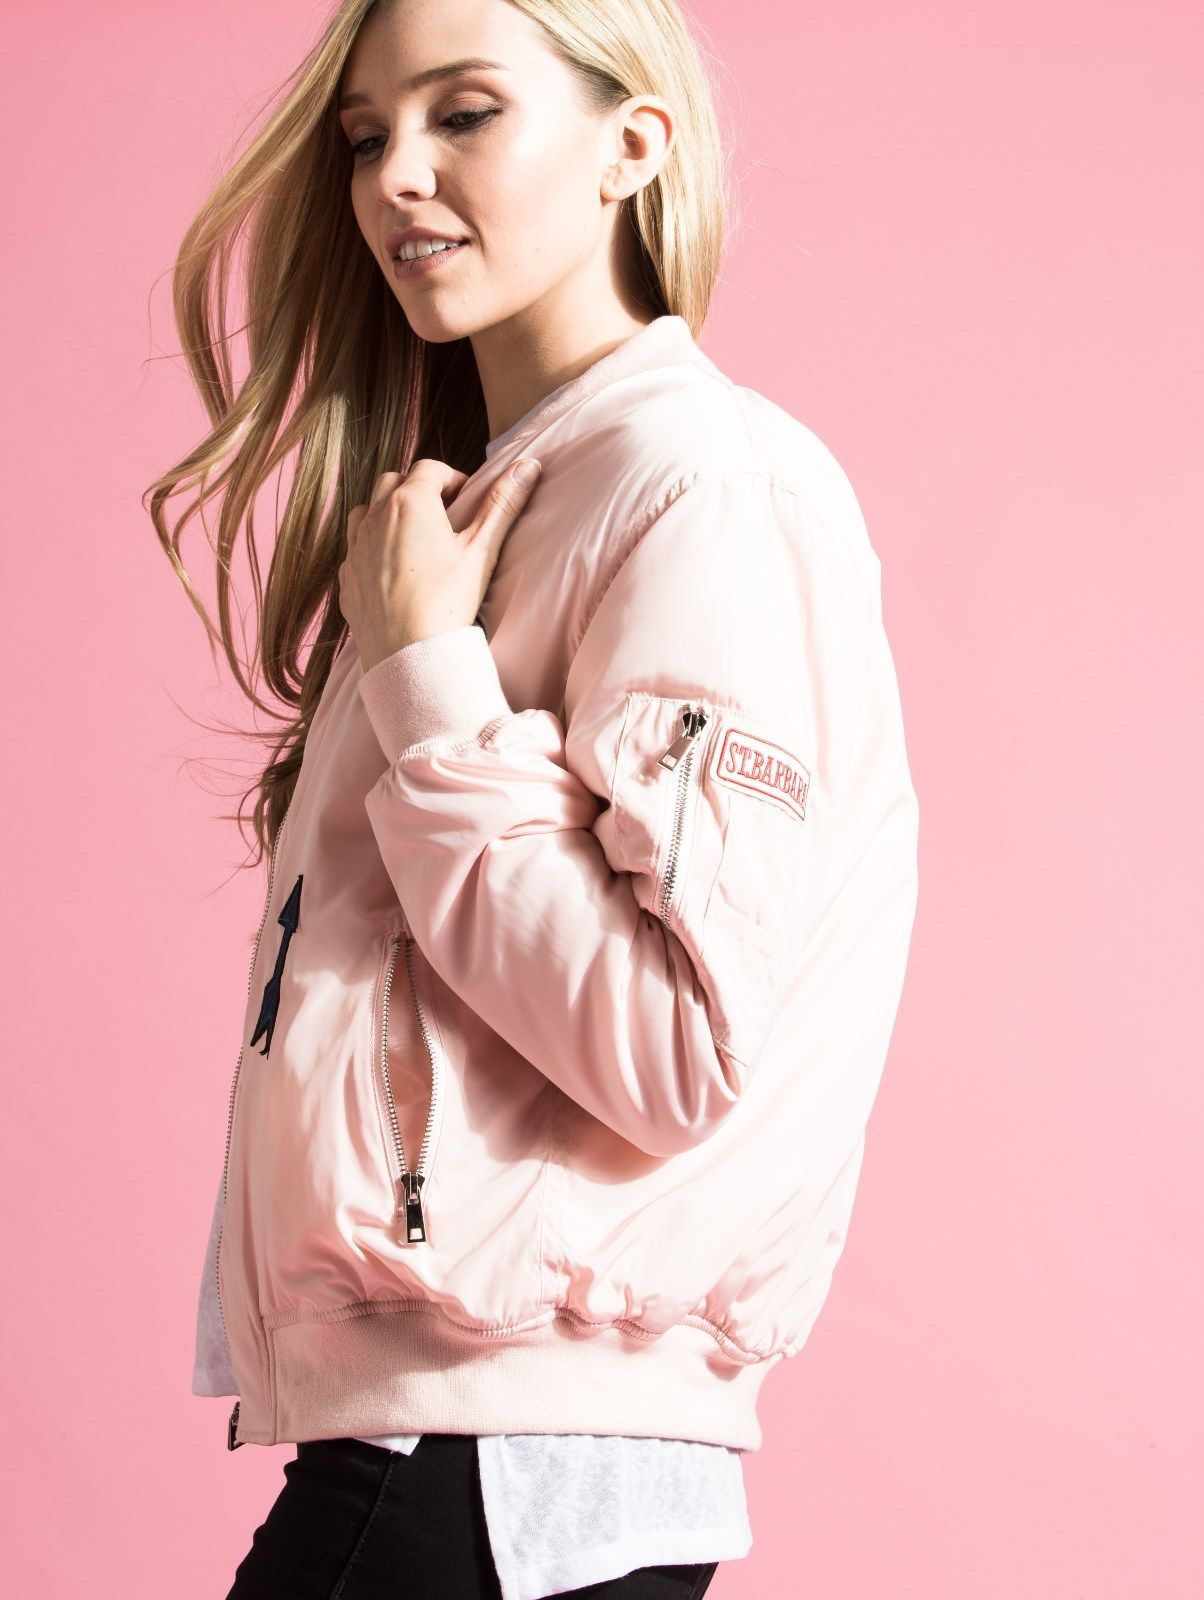 e7155bdd5 Details about Women's Baby Pink Bomber Jacket with Patches | Sizes 8, 10,  12, 14